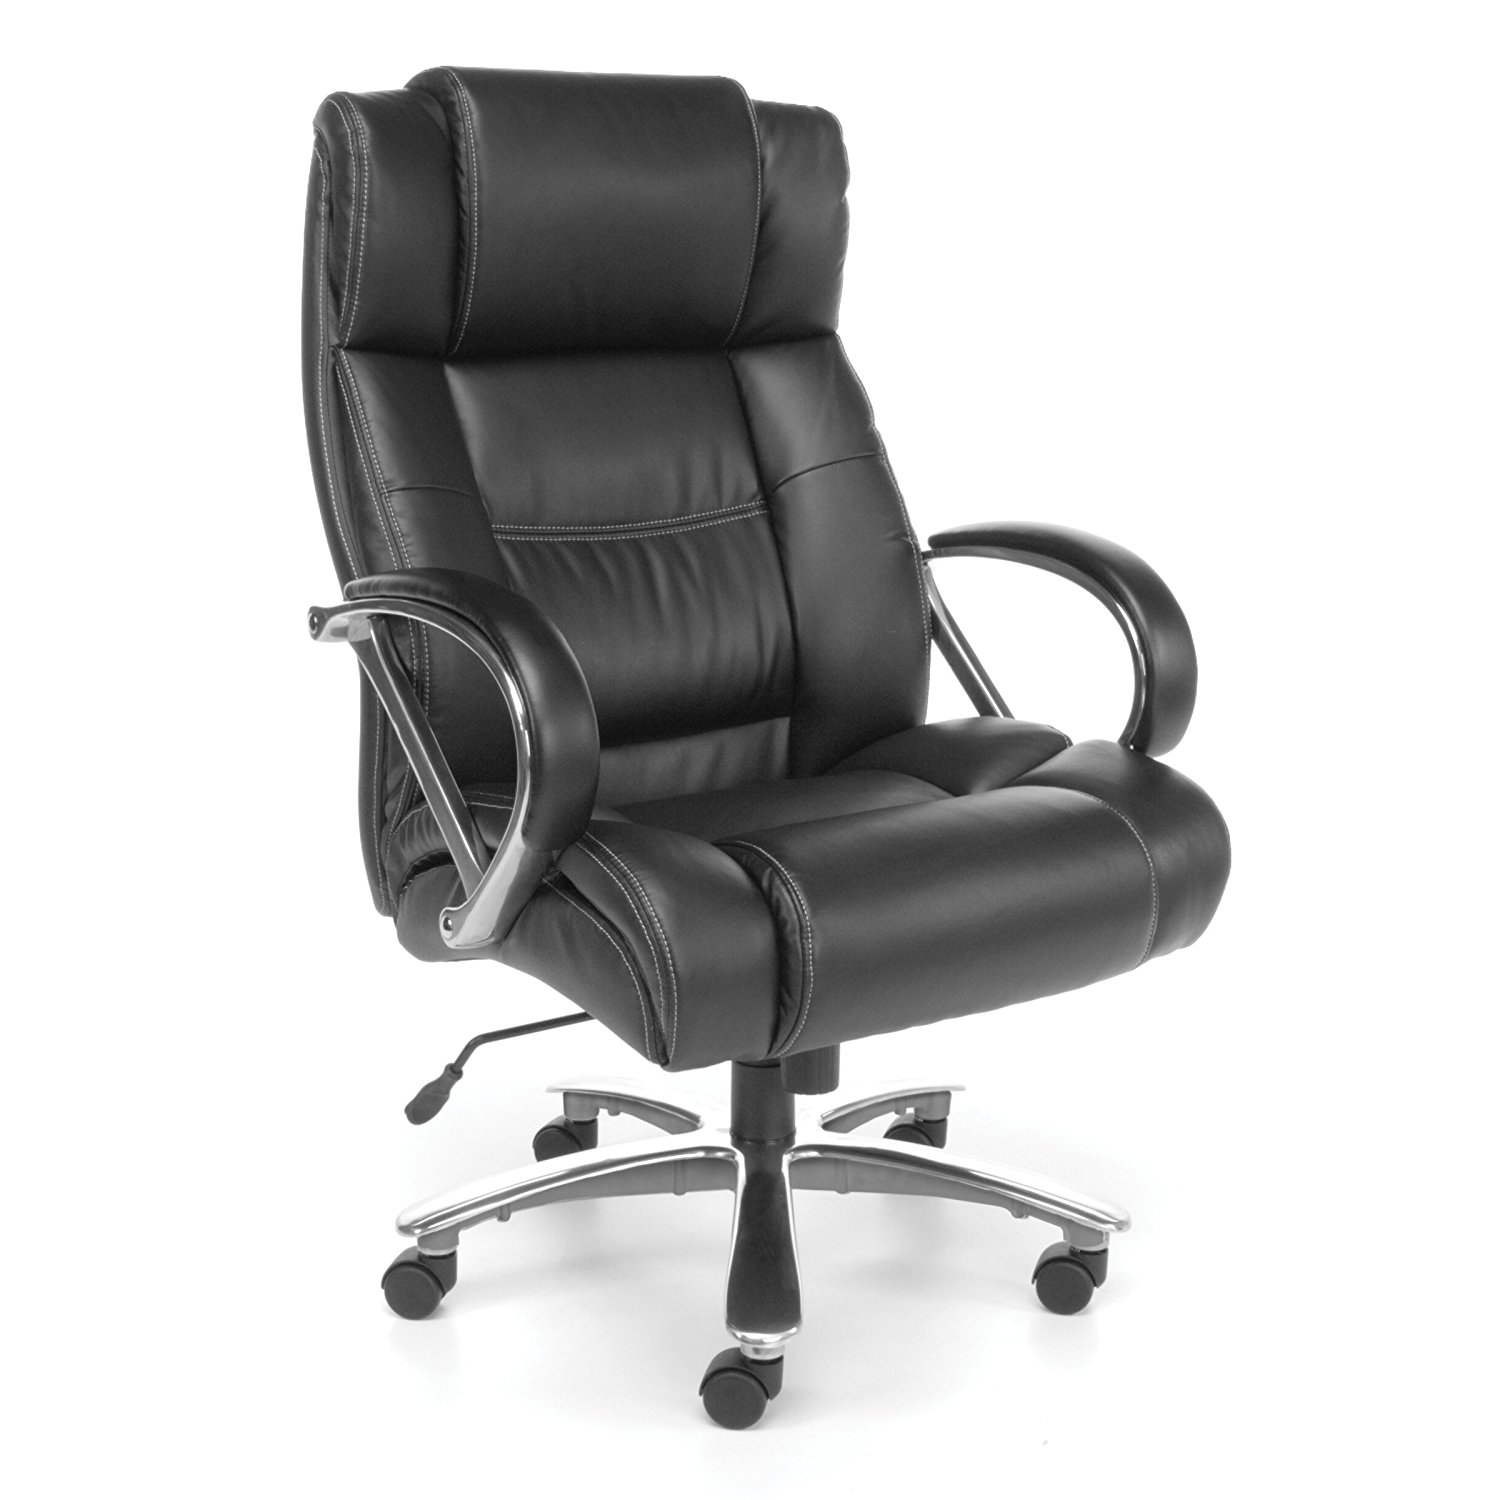 office chair supports 300 lbs bean bag reviews 10 big and tall chairs for extra large comfort